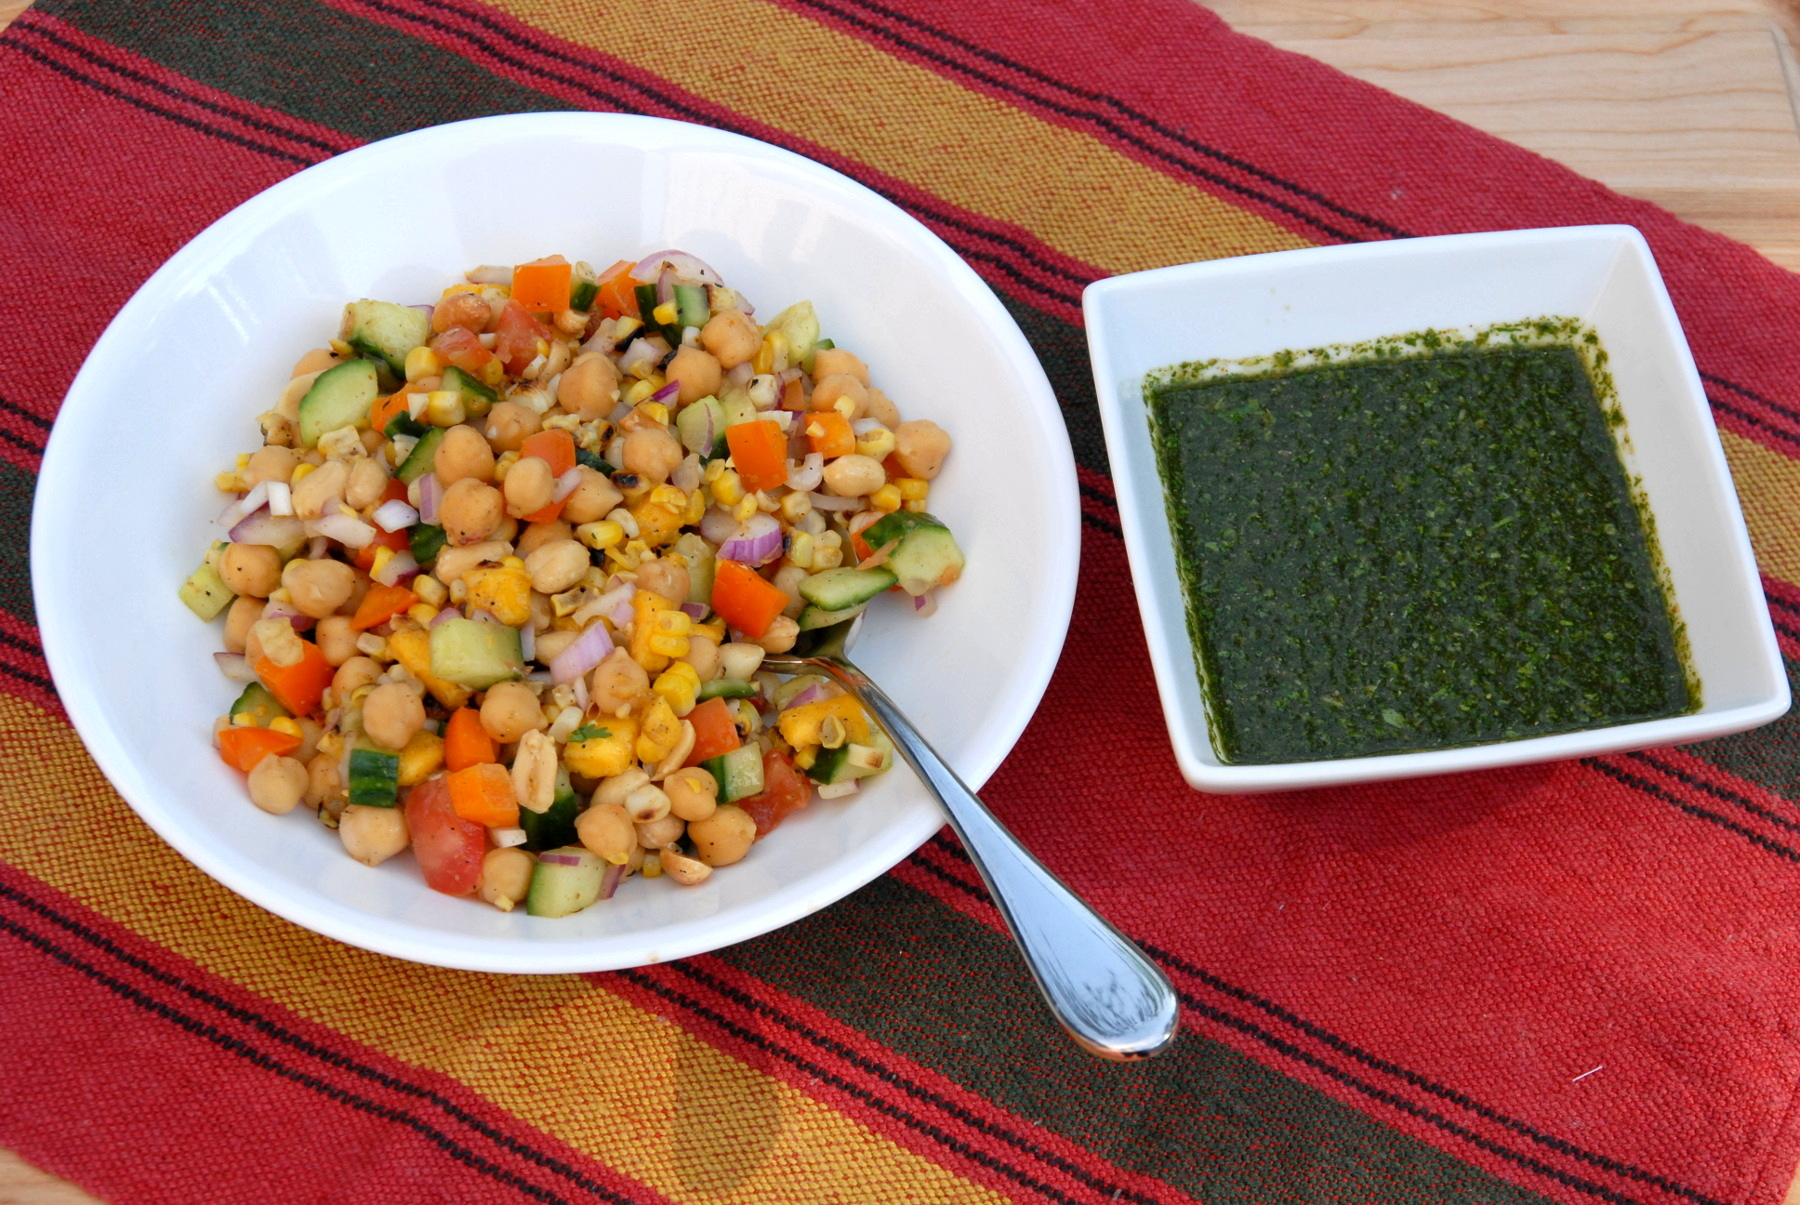 &quot;Wildfire&quot; chaat - Indian chickpea salad with mint chutney